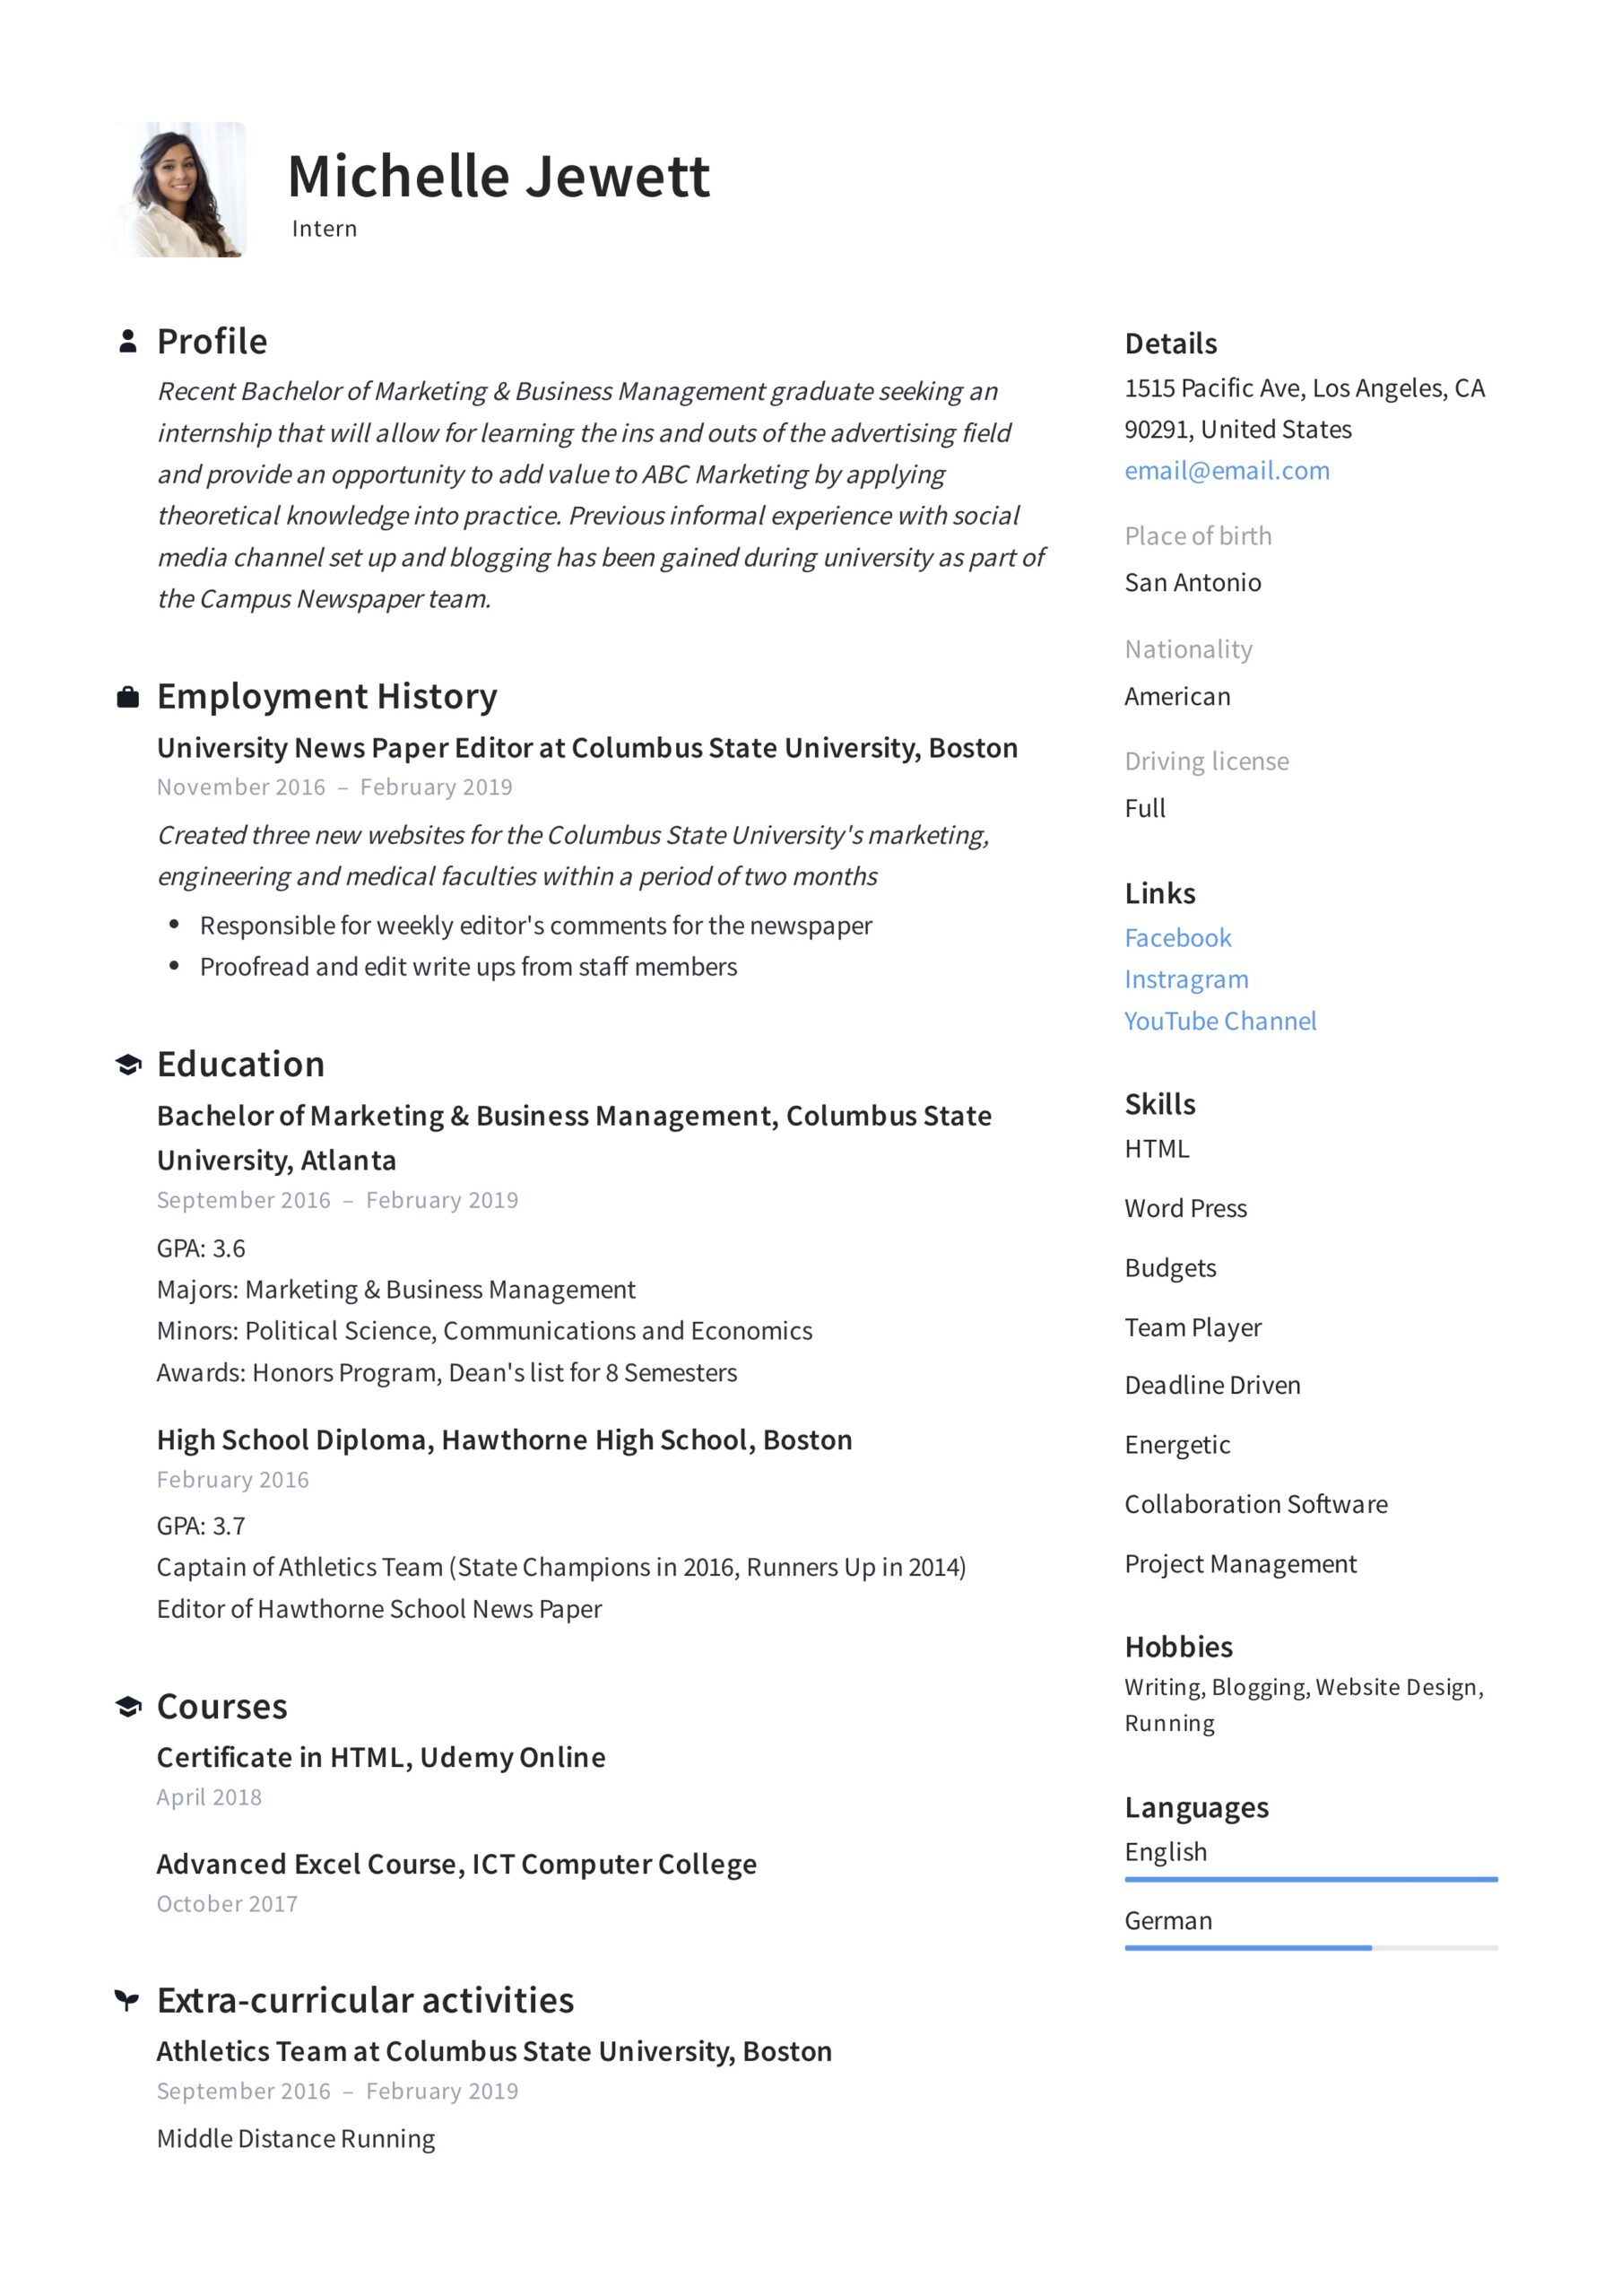 intern resume writing guide samples pdf college internship example customer success Resume College Internship Resume